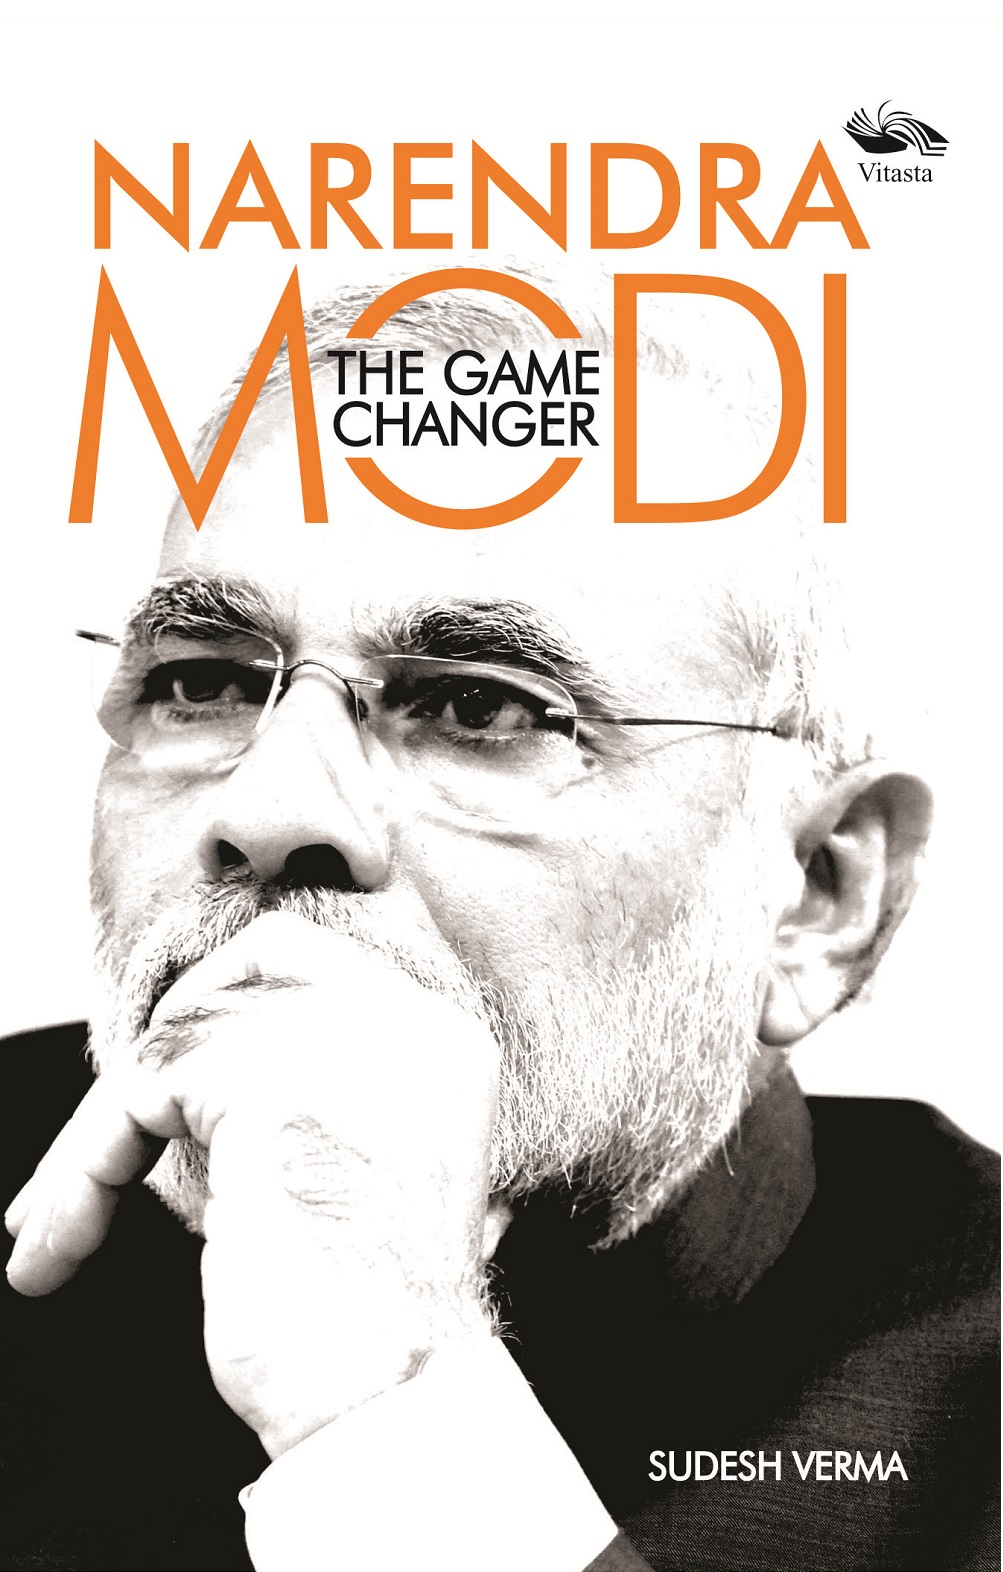 Narendra Modi - The Game Changer